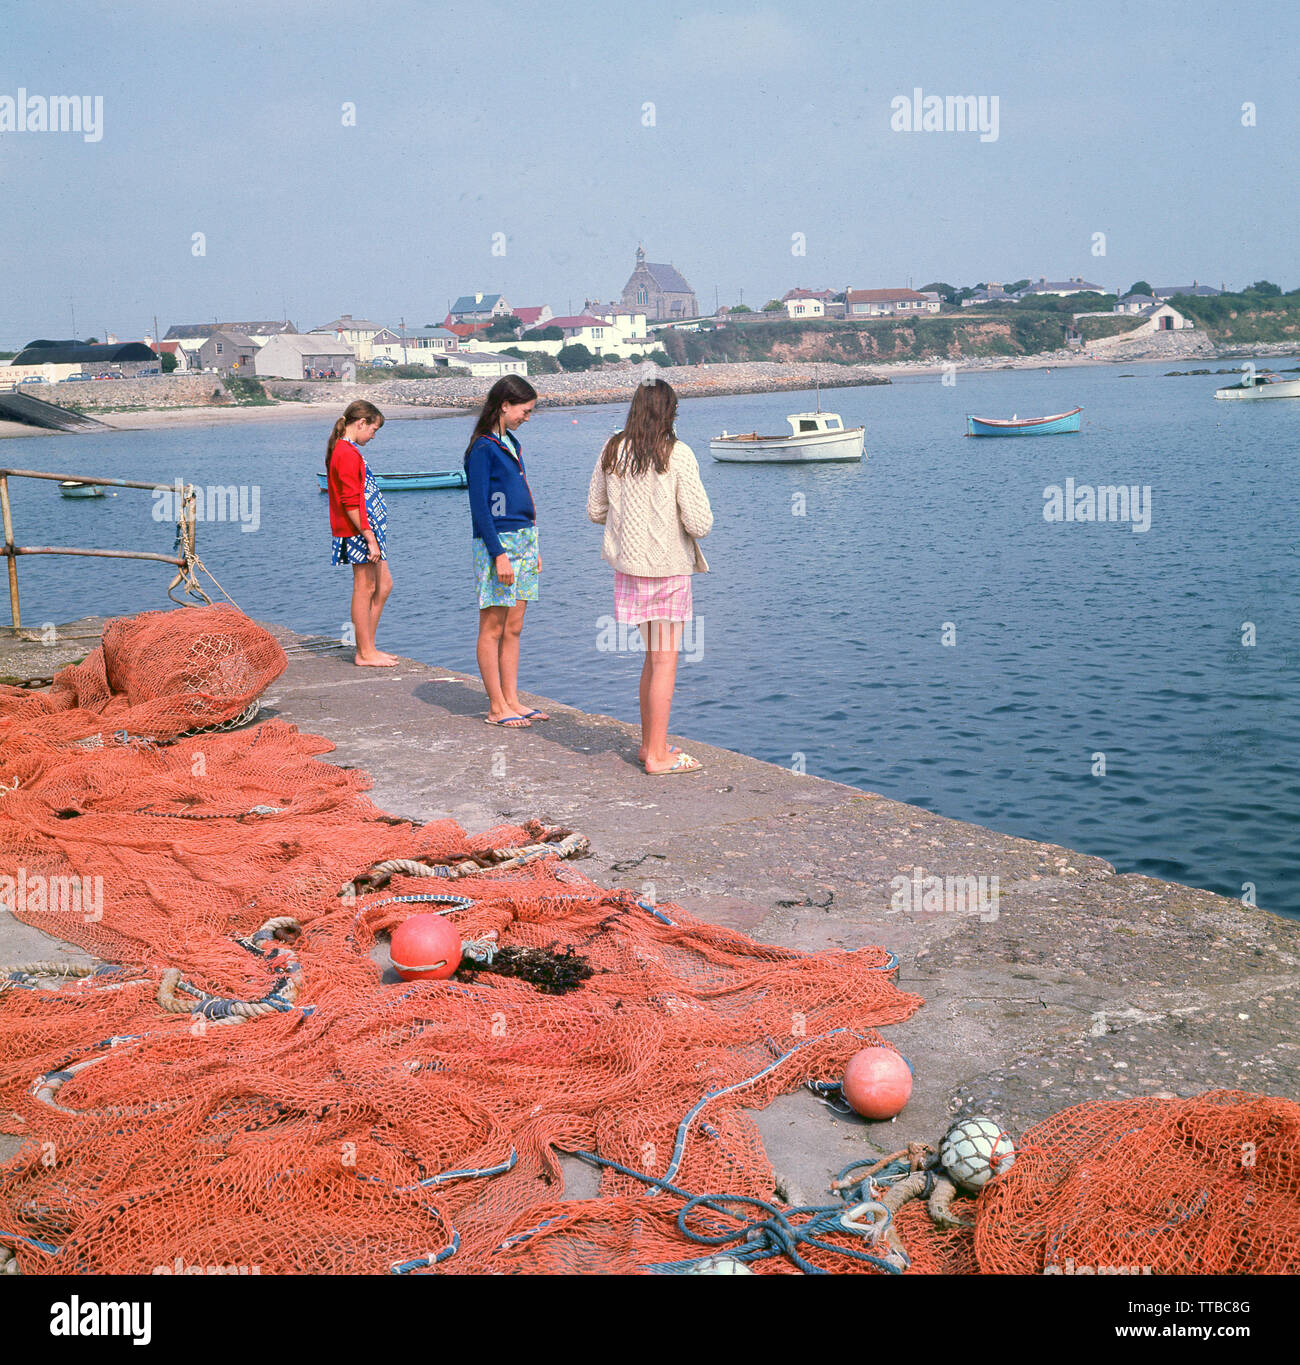 1960s, historical, three young teenage girls standing by fishing nets at the water's edge at the harbour in Kilmore, a fishing village in County Wexford, Ireland. - Stock Image